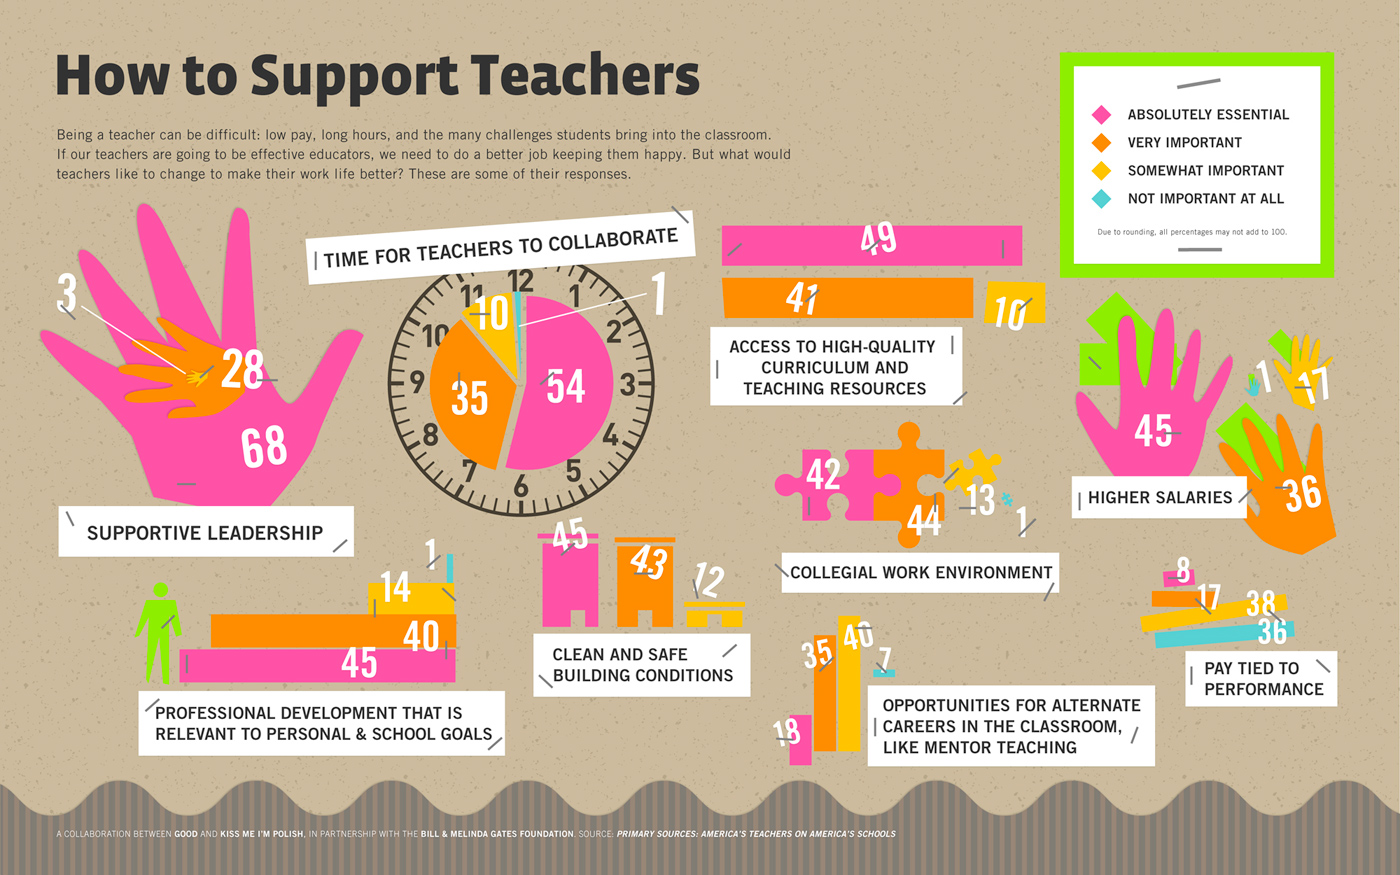 How To Support Teachers